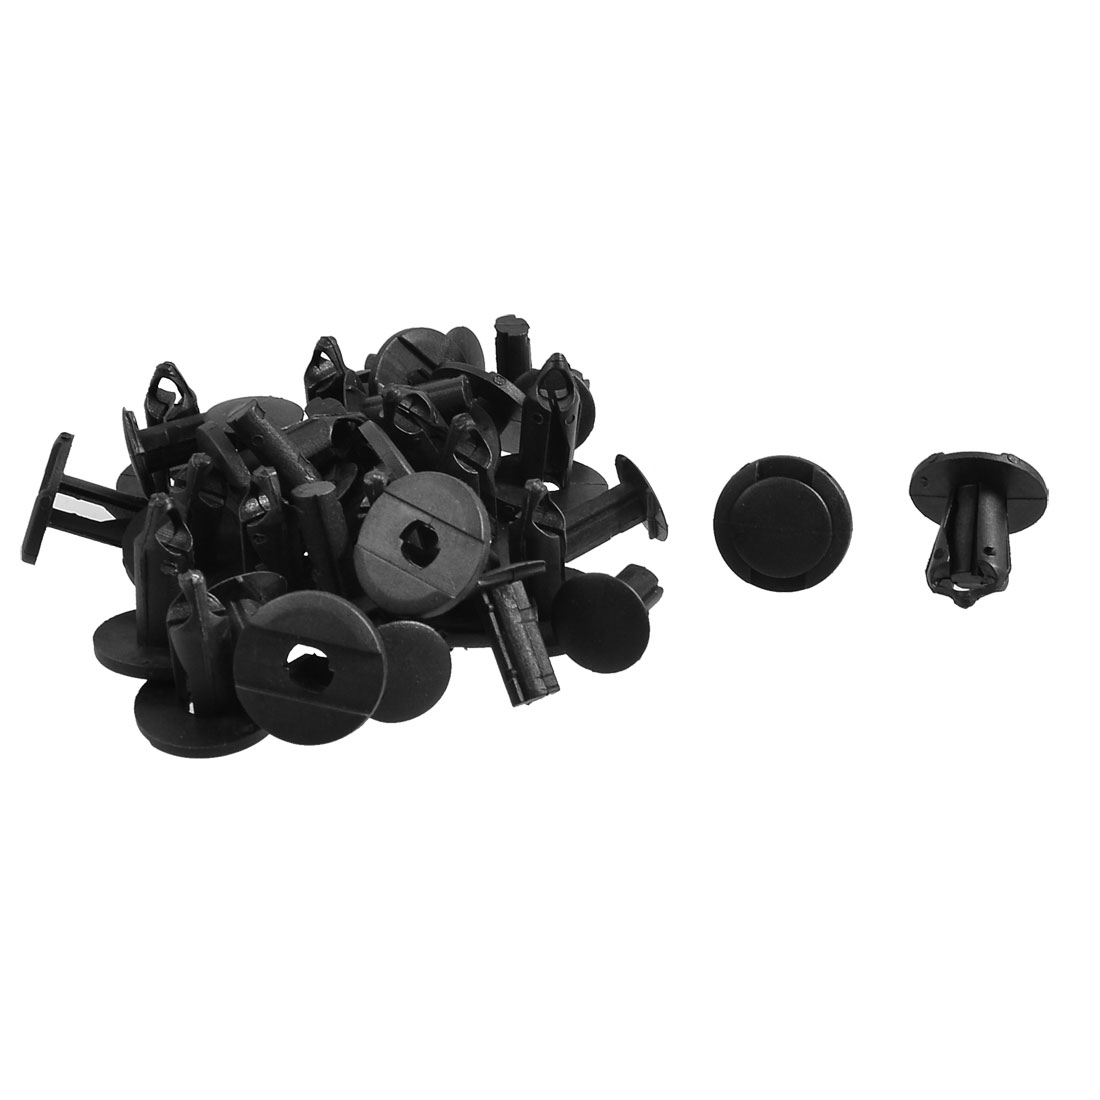 20 Pcs 8mm Hole Plastic Push Screw Rivet Fairing Panel Fixings Clips